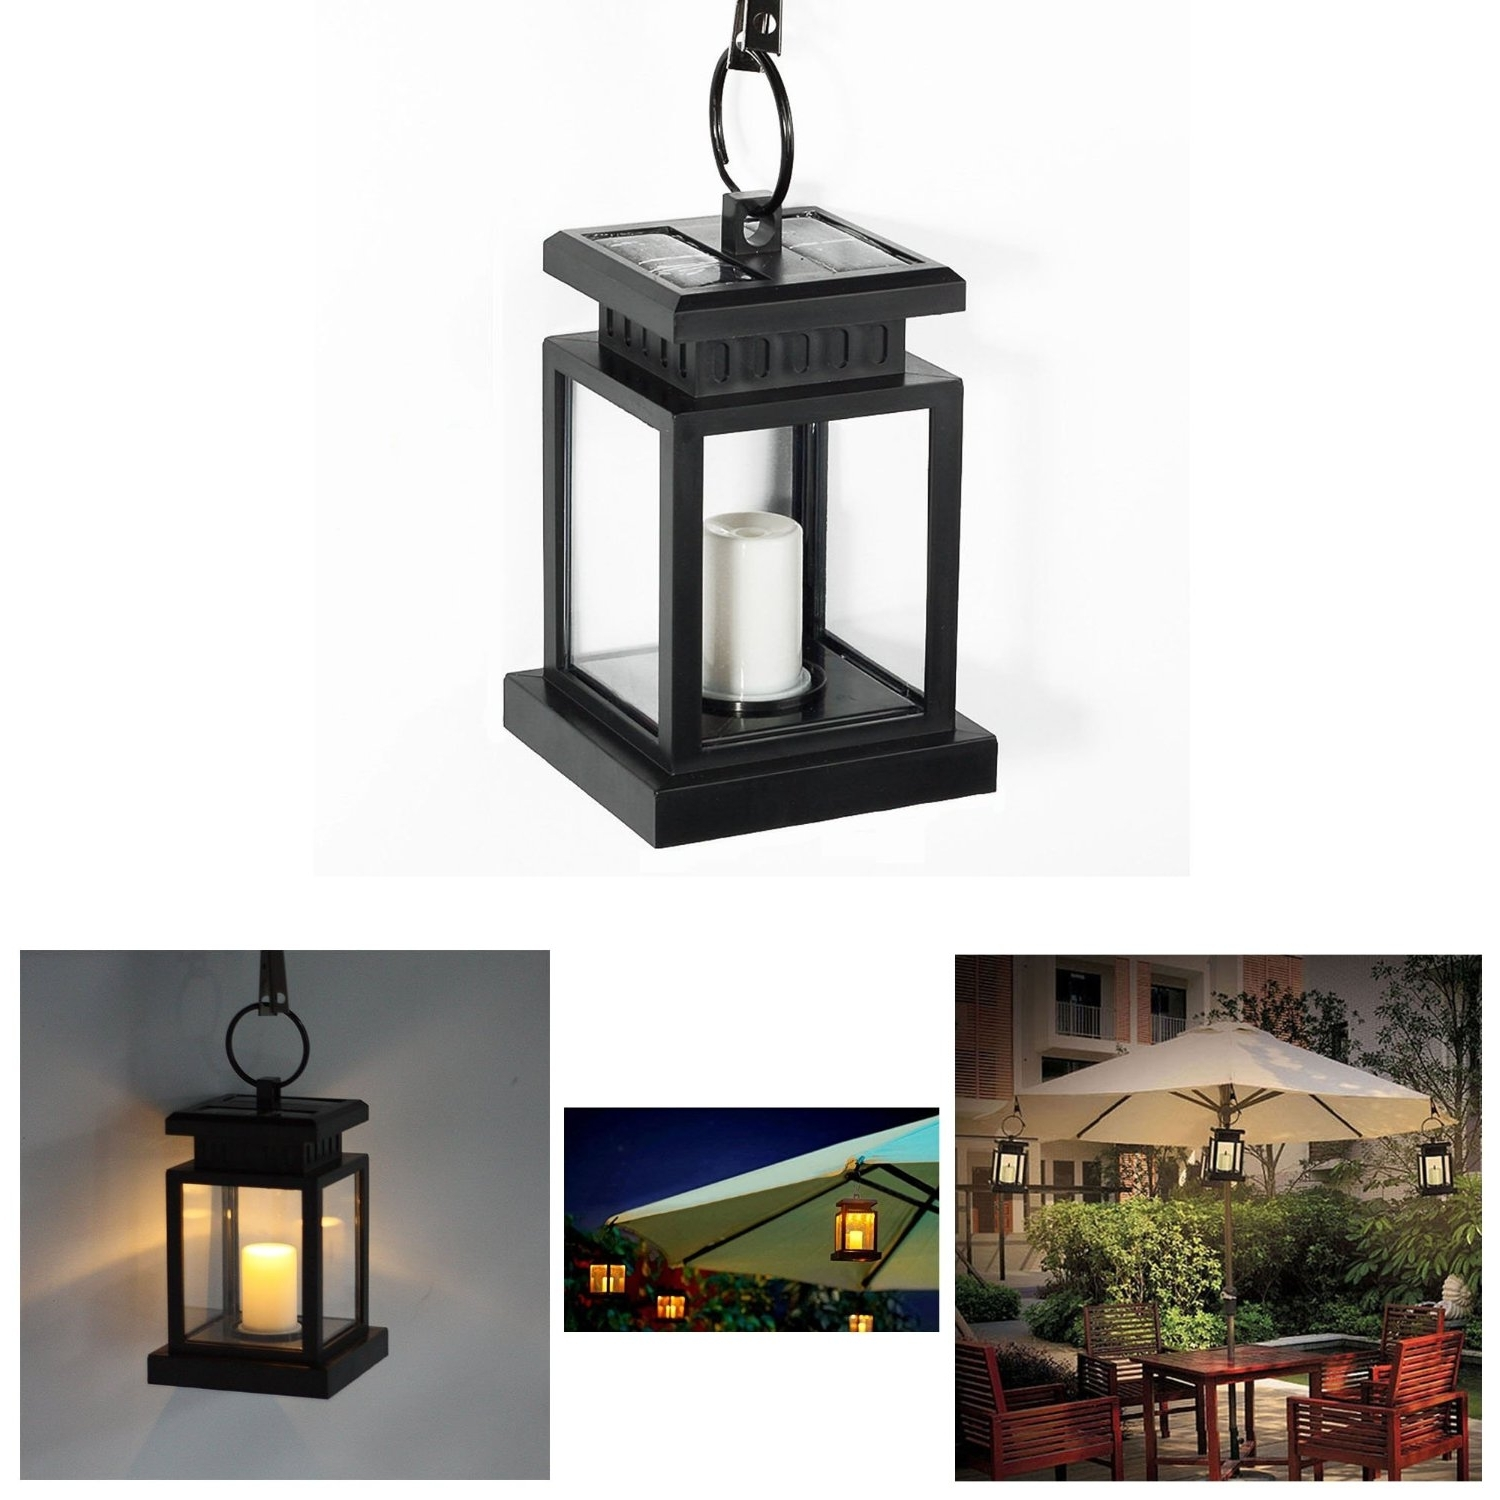 Outdoor Hanging Lanterns With Candles Intended For Well Known Solar Powered Hanging Umbrella Lantern Candle Led Light With Clamp (View 10 of 20)